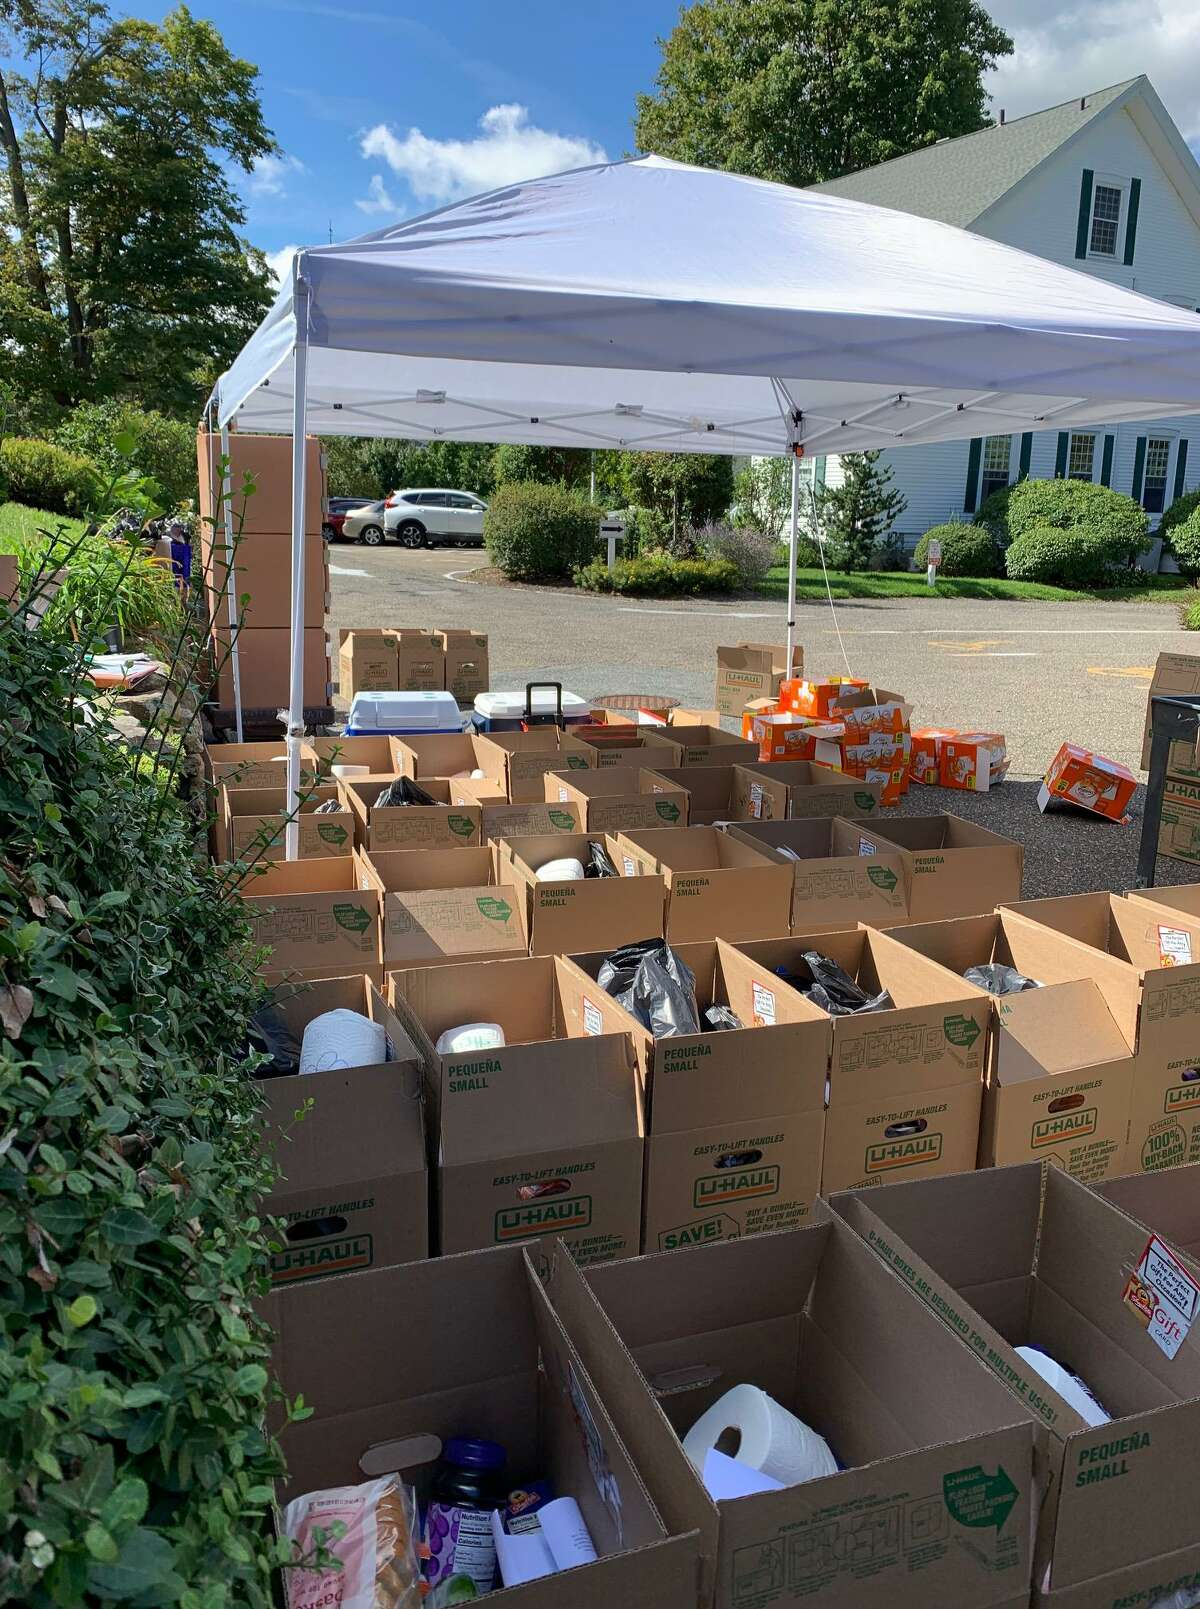 Norwalk Mutual Aid collects and distributes food and supplies for families in need in Norwalk, Conn., many of whom do not qualify for other kinds of aid.